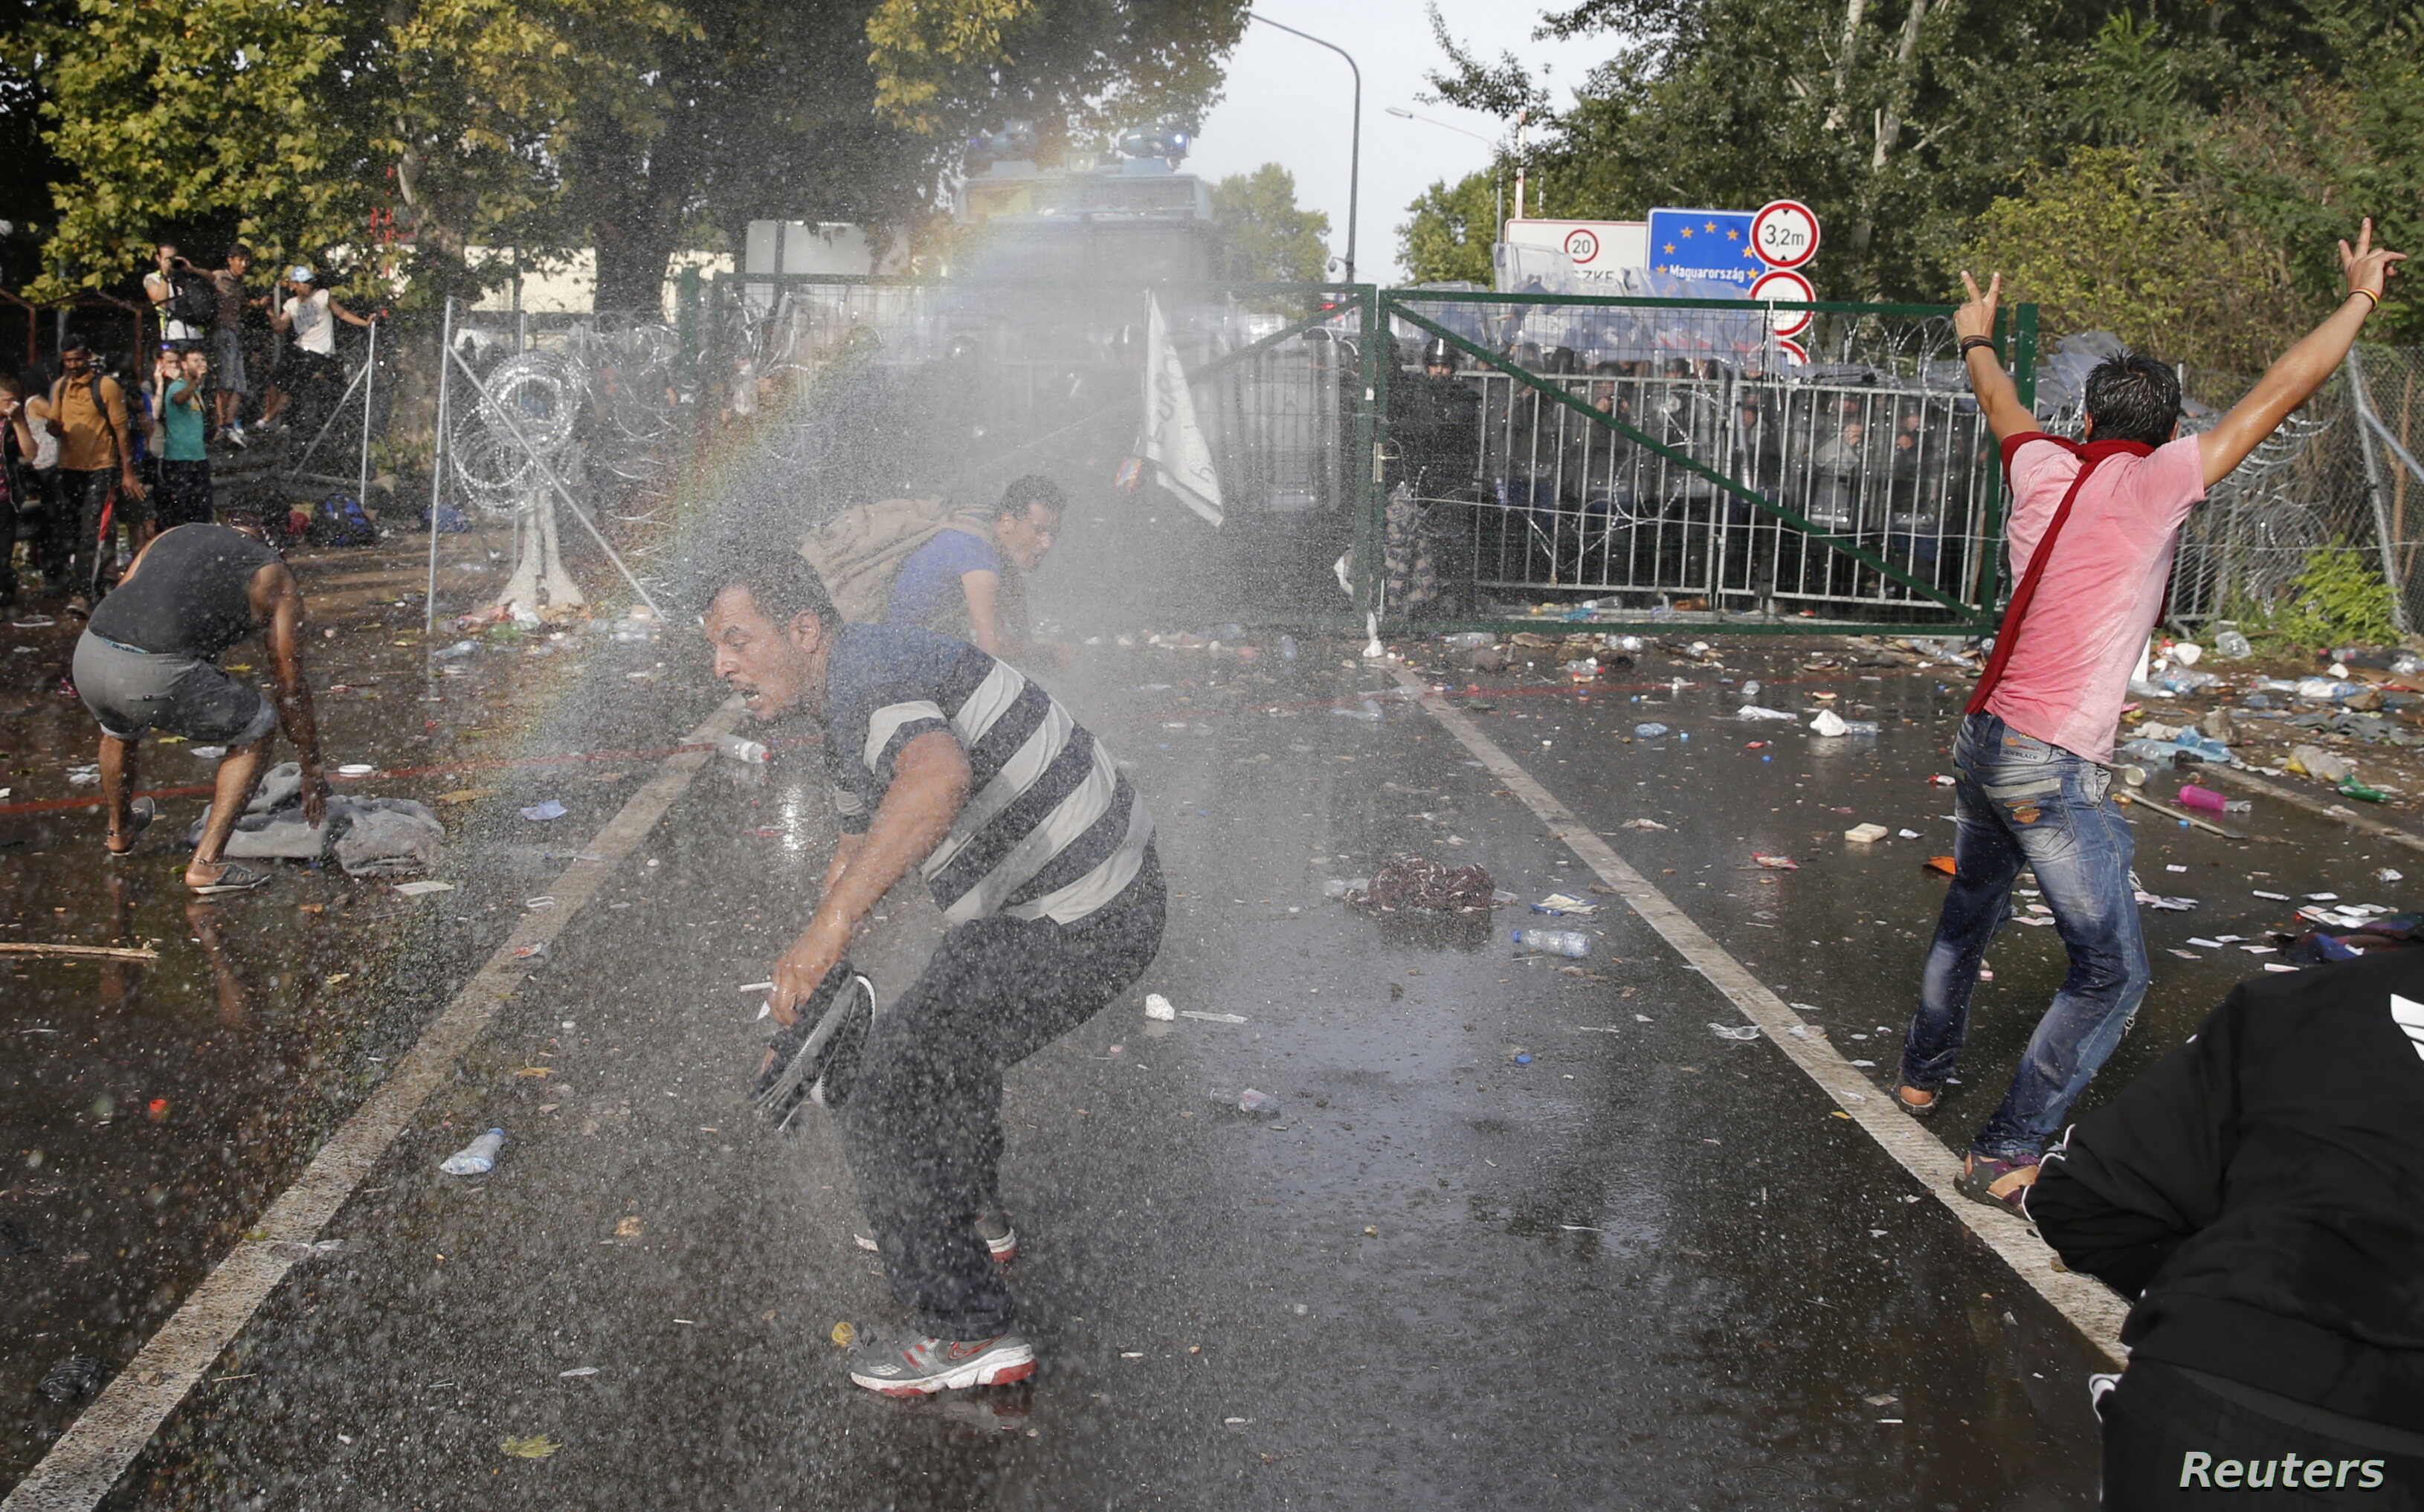 Migrants react on the Serbian side of the border as Hungarian riot police fires tear gas and water cannon near Roszke, Hungary, Sept.16, 2015.